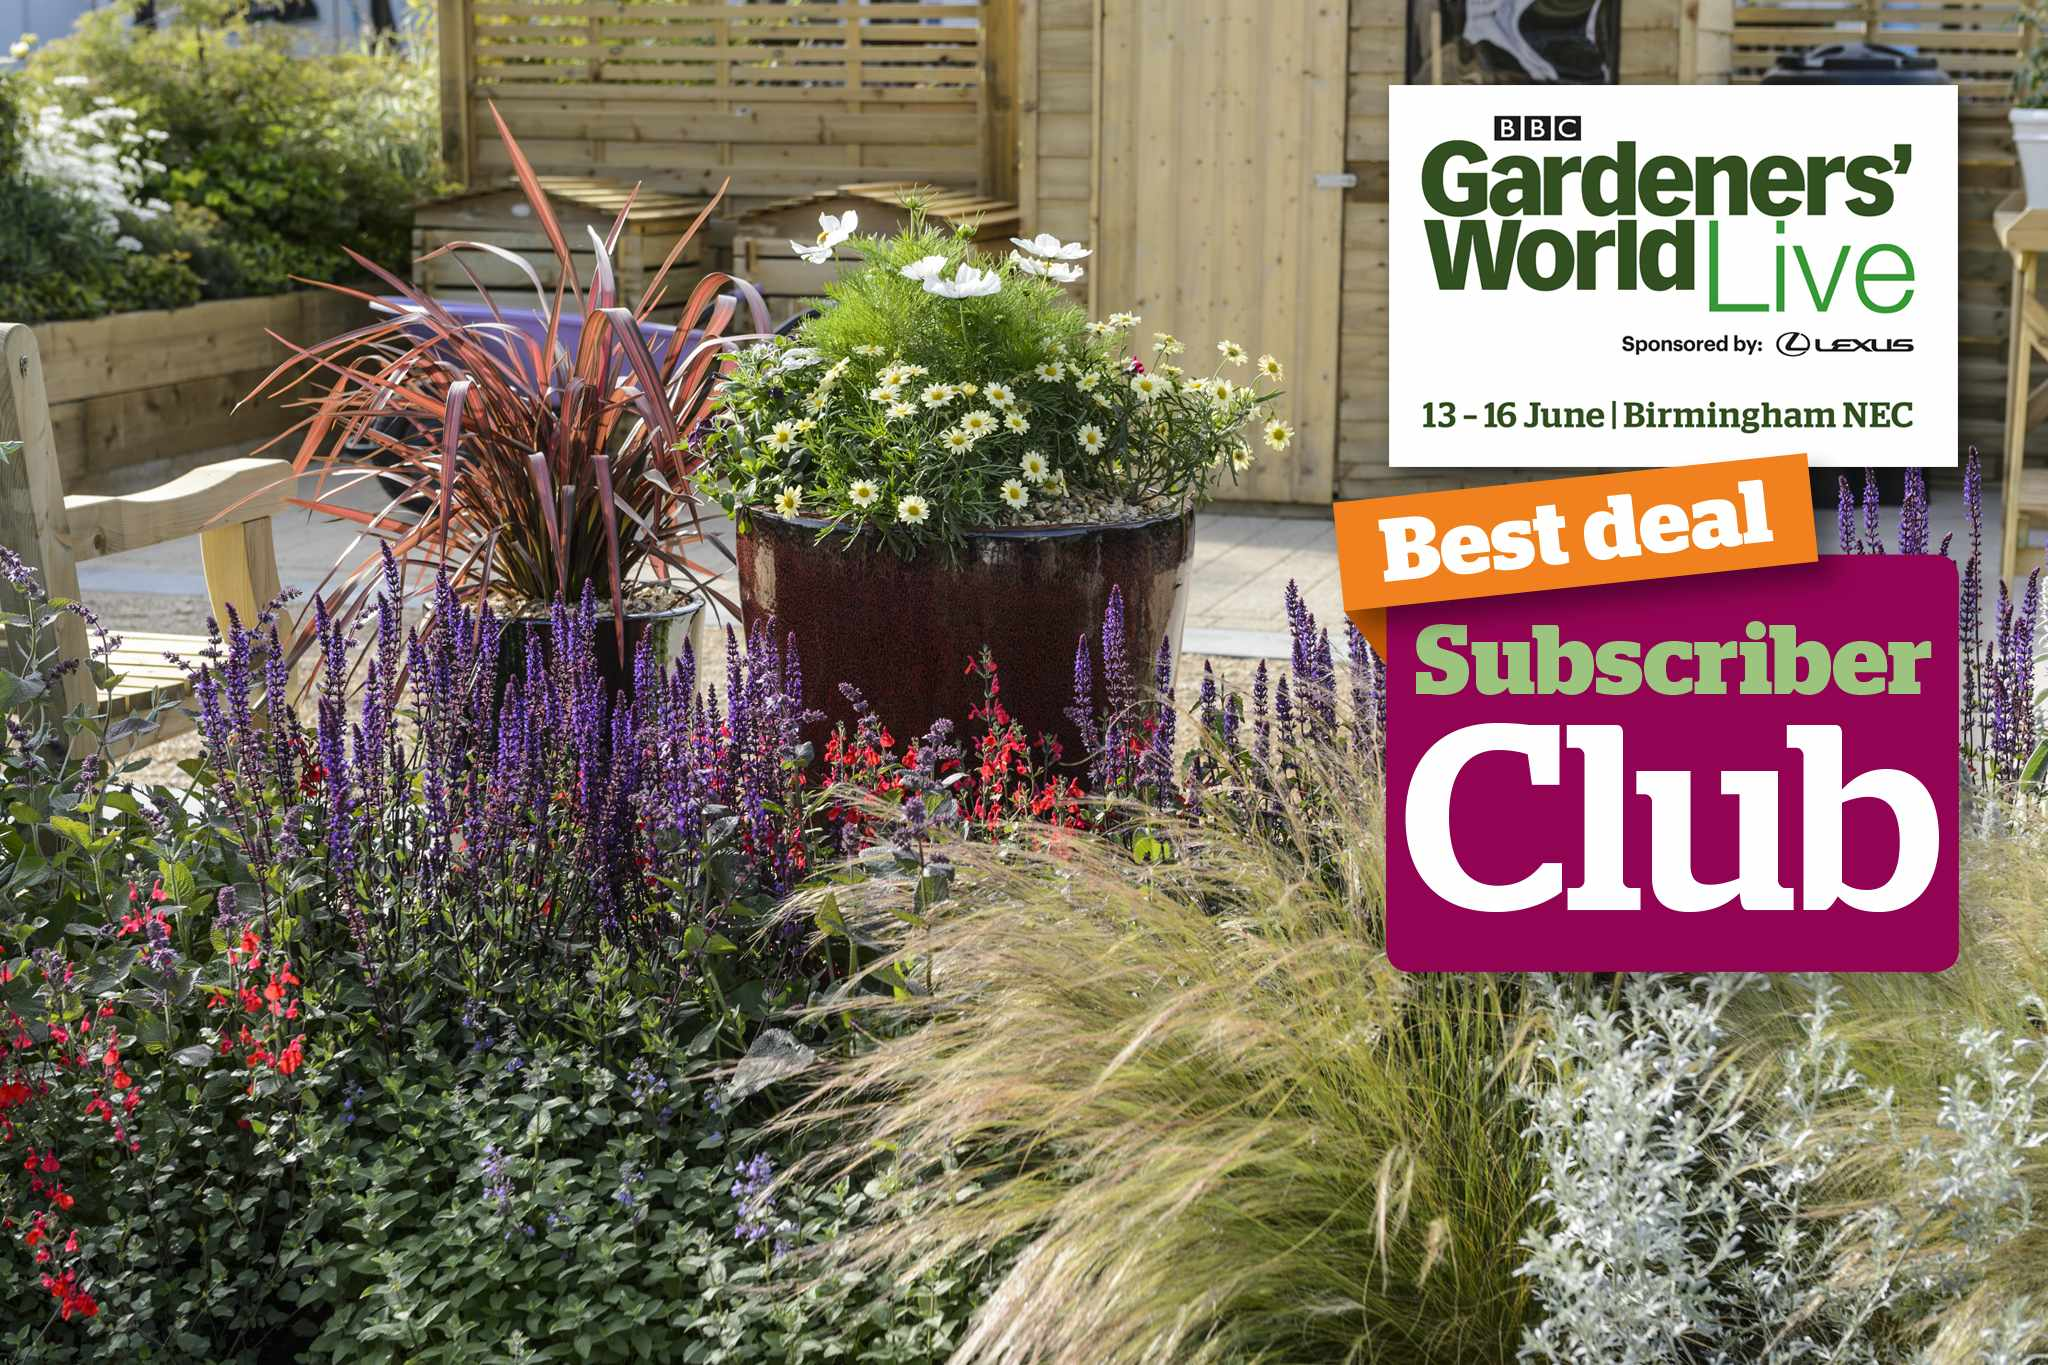 Gardeners' World Live 2019 subscriber club ticket offer